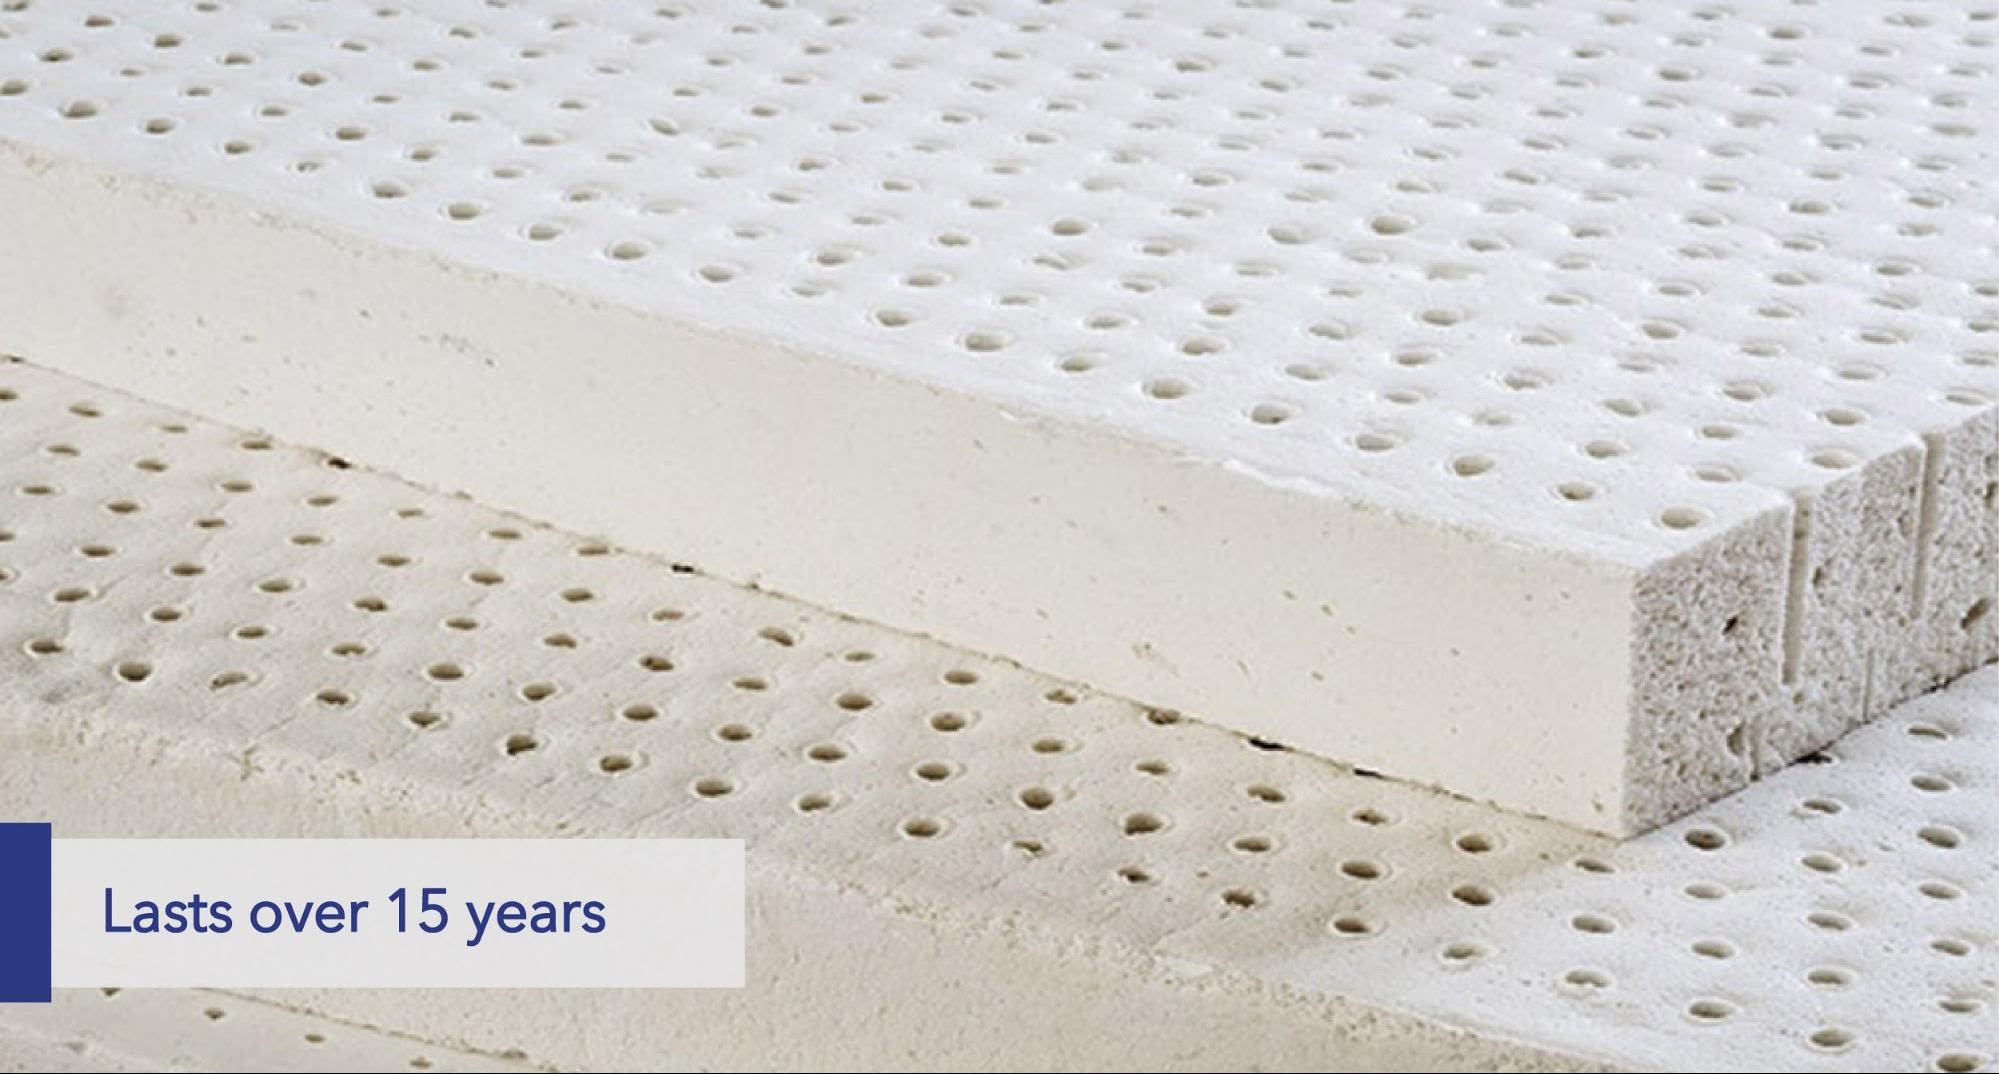 Latex mattresses last over 15 years